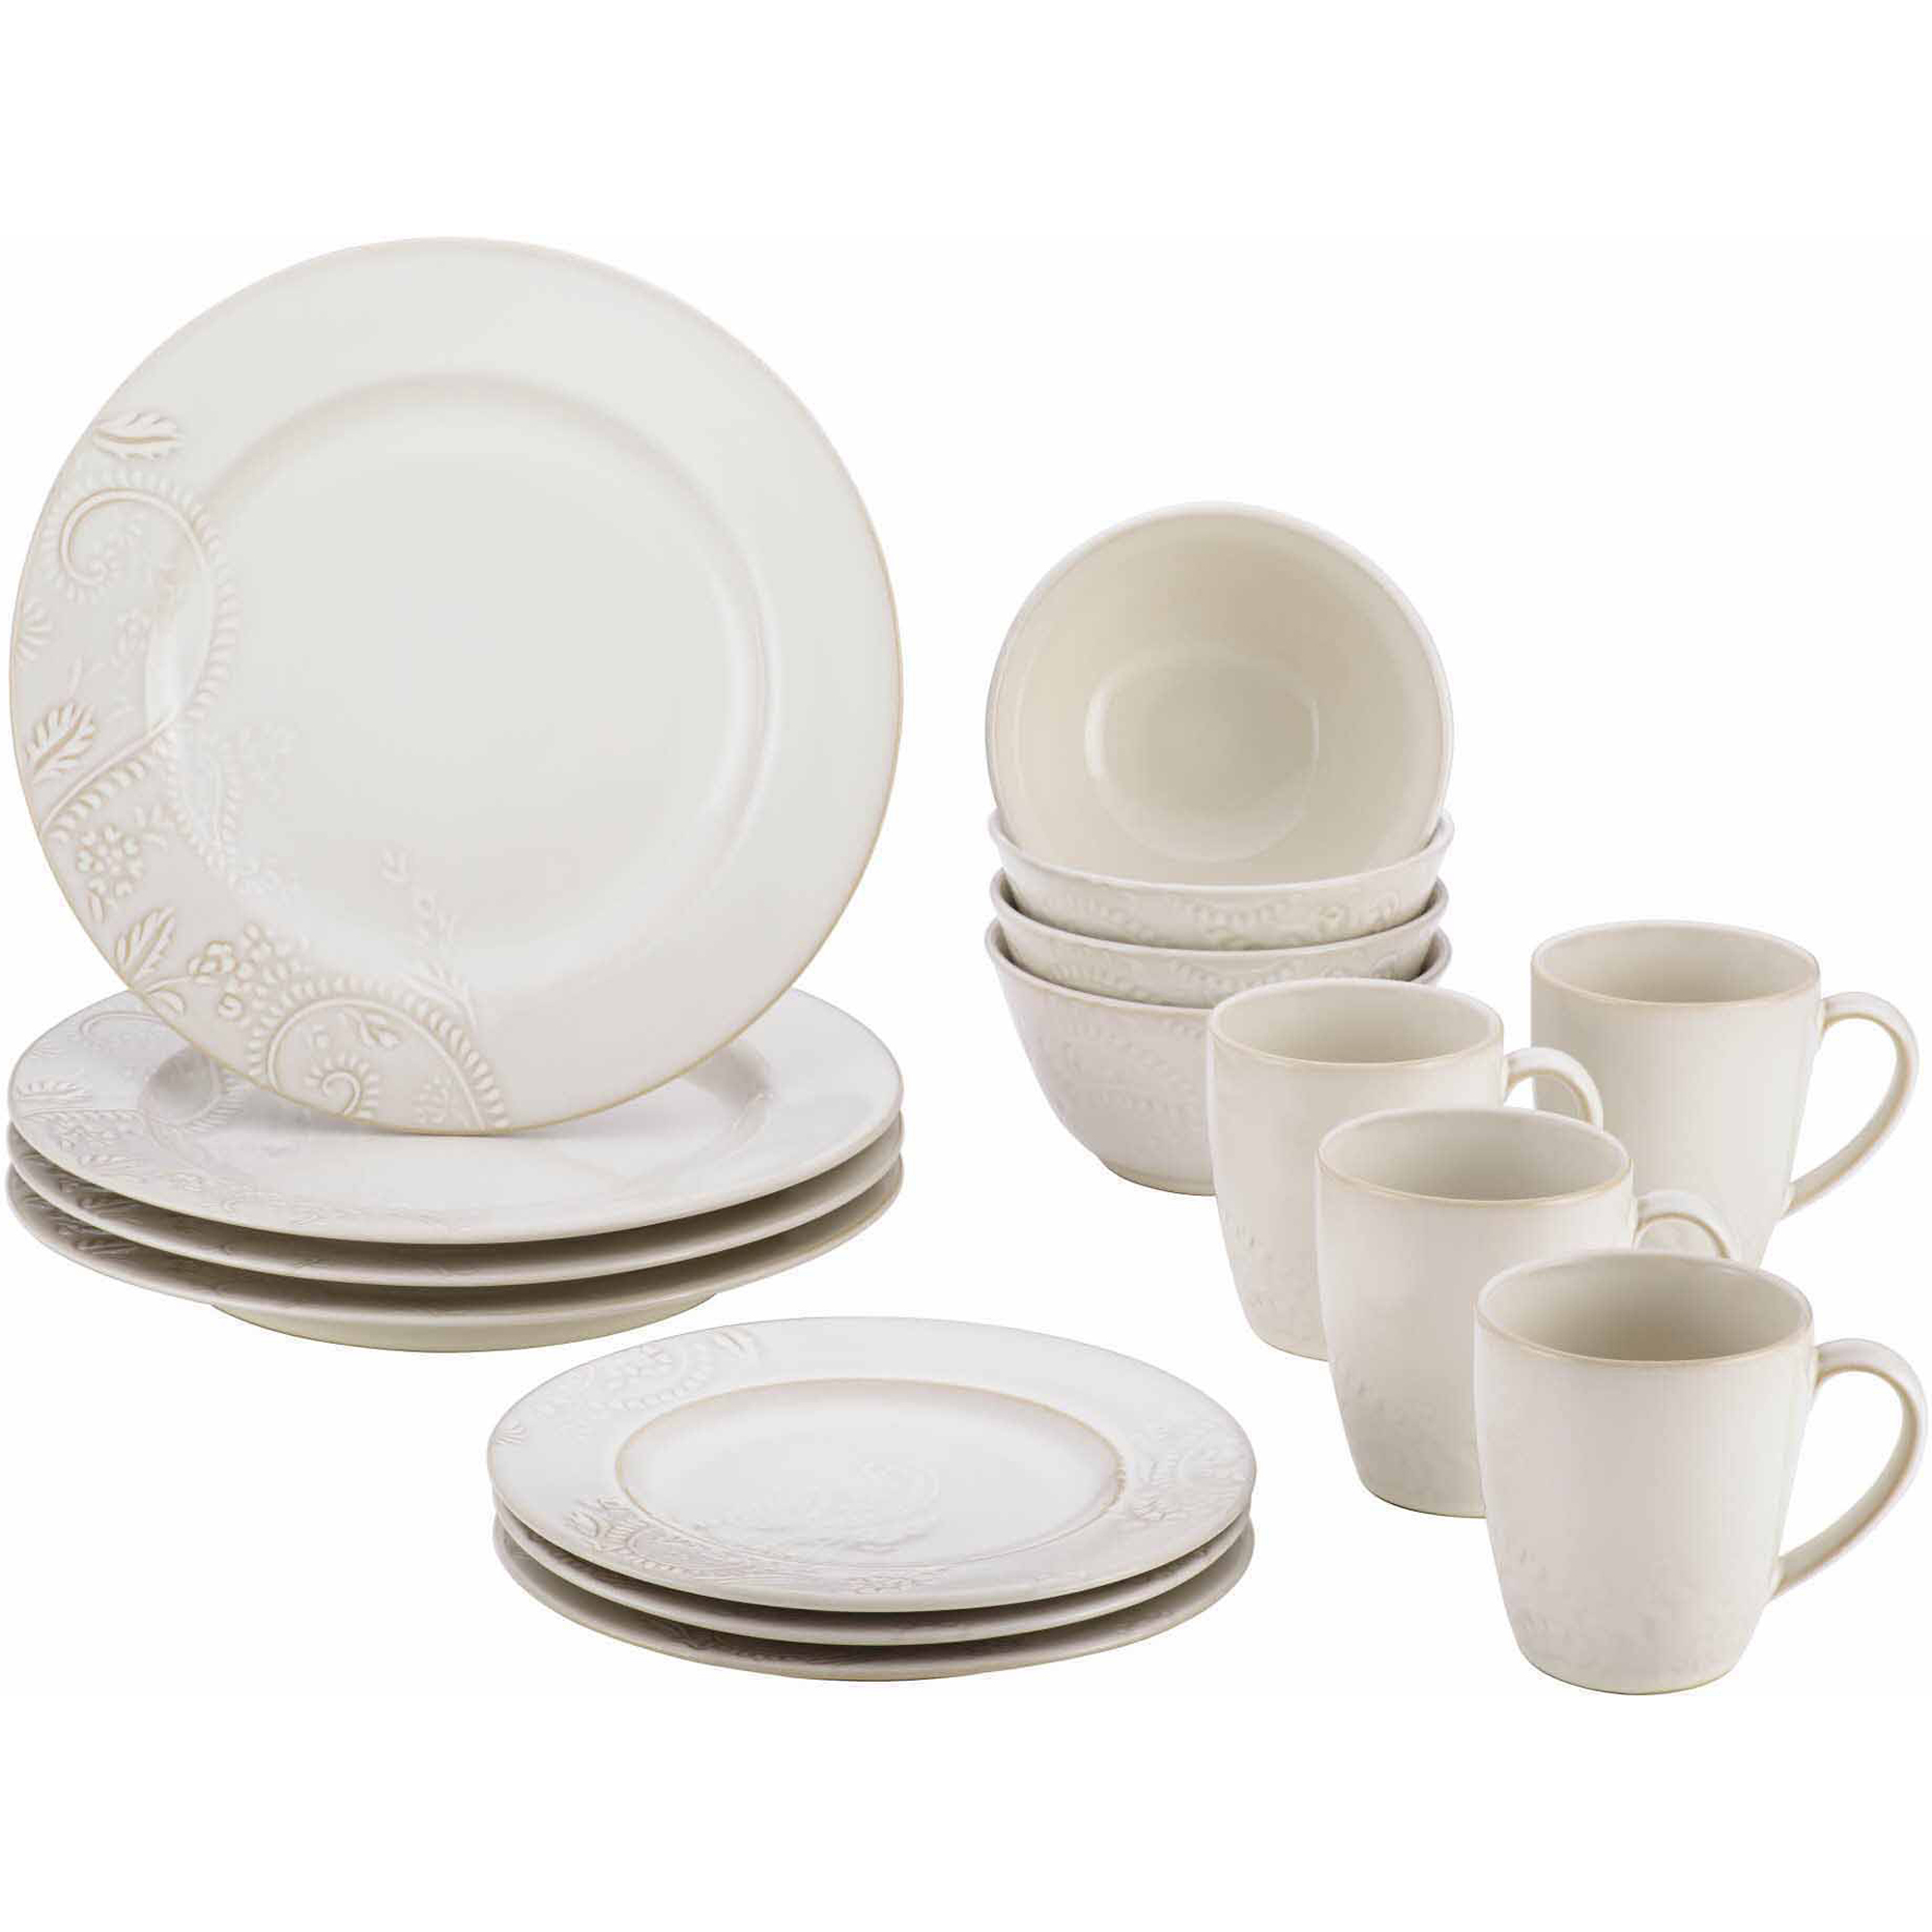 Fantastic stoneware dishes for dinnerware collection with stoneware dishes made in usa